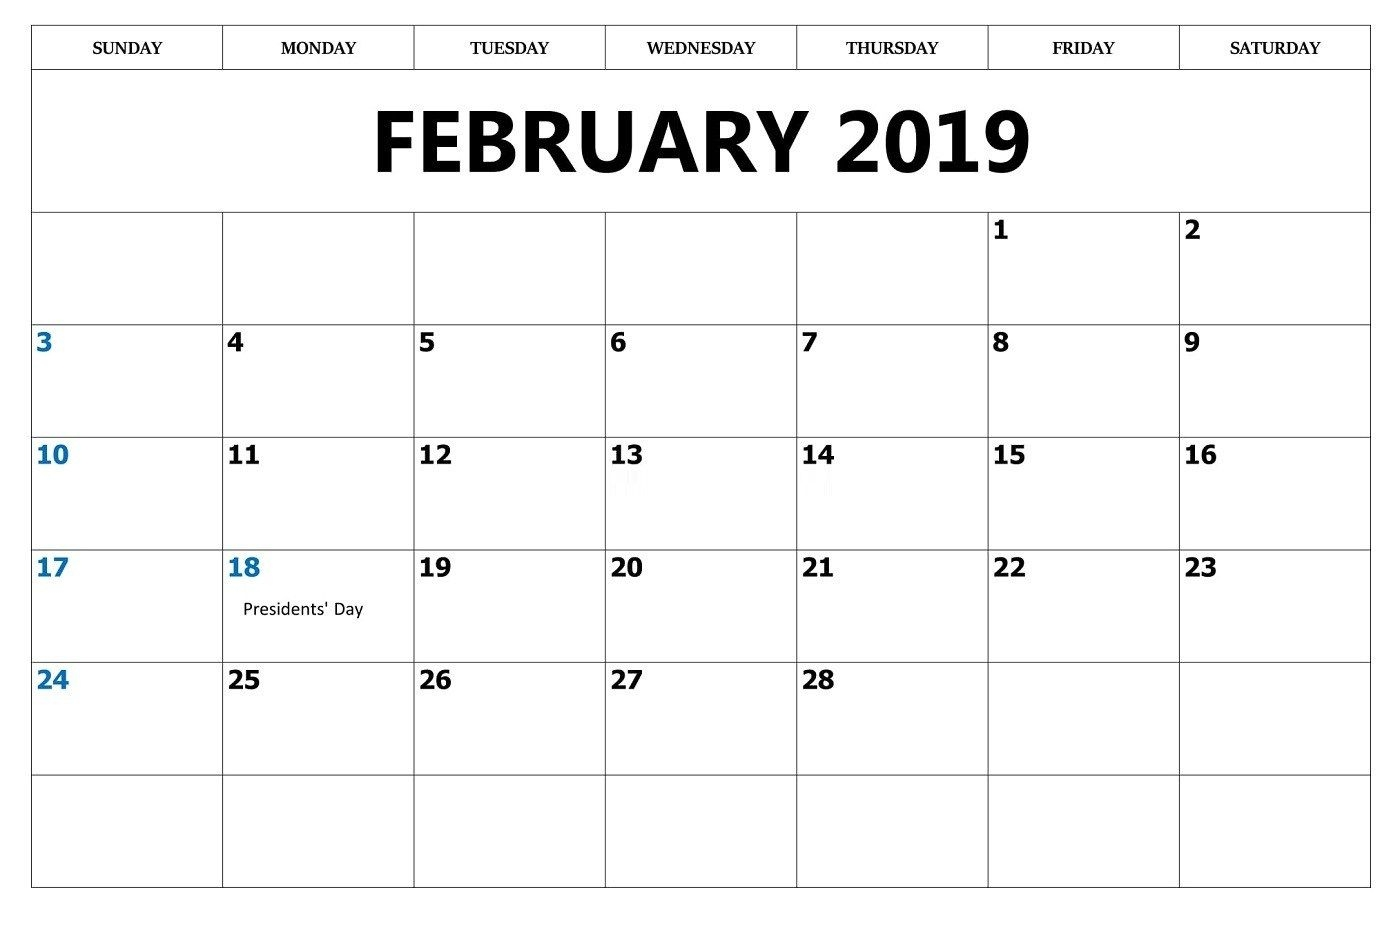 February 2019 Calendar With Holidays For Office February 2019